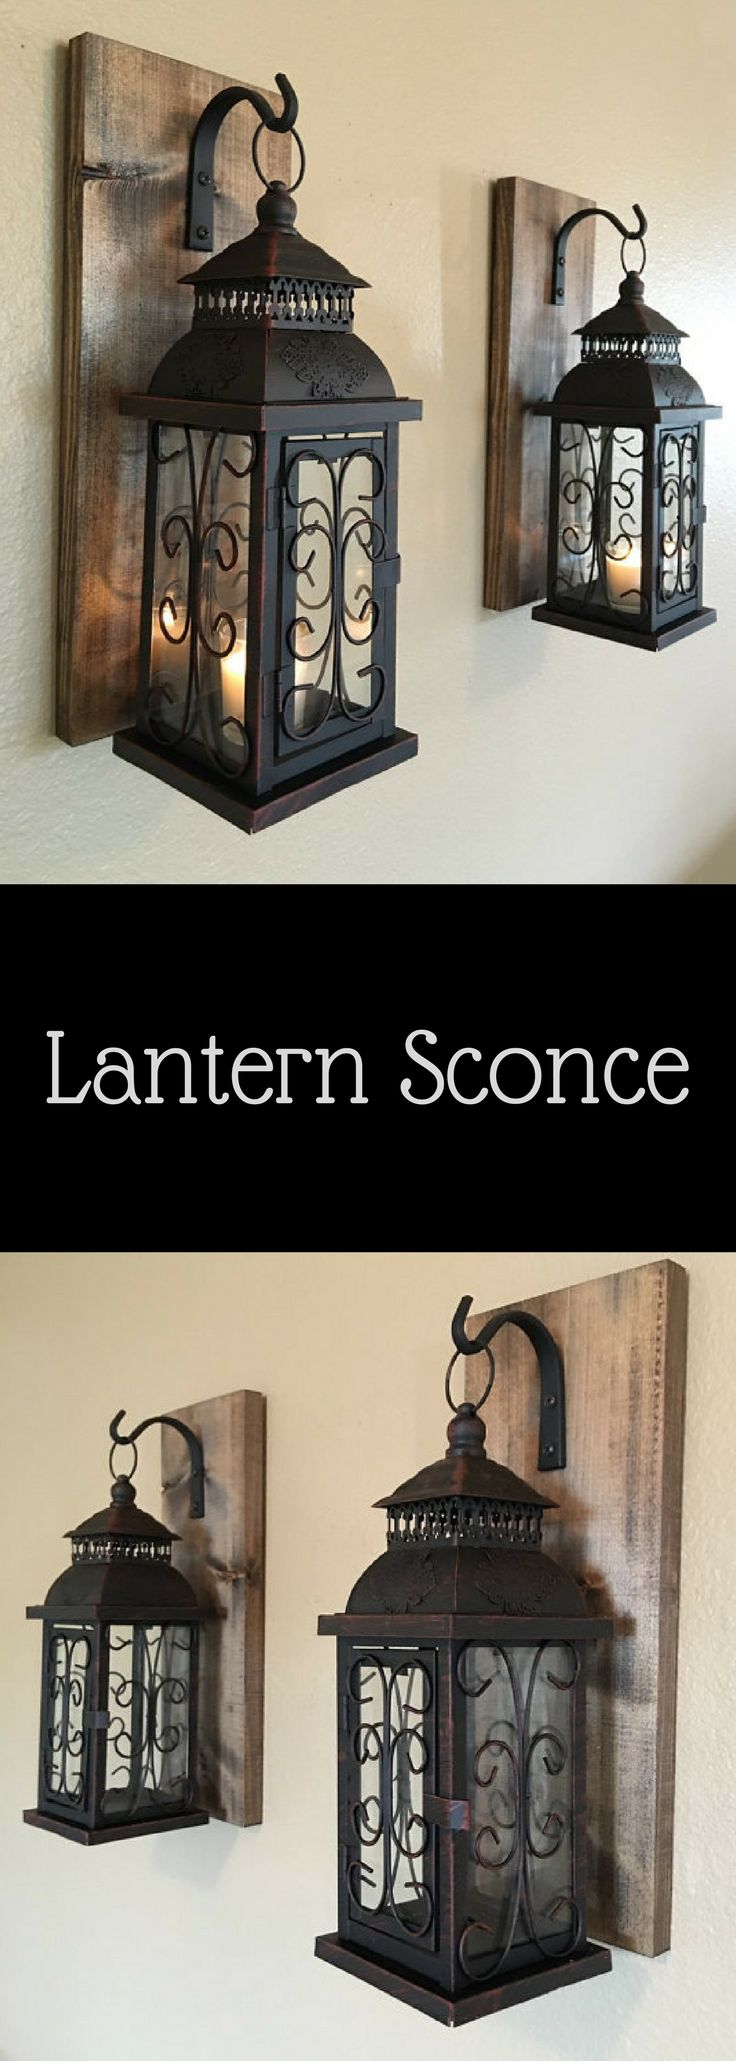 Best 25 bathroom wall sconces ideas on pinterest bathroom lantern pair wall decor wall sconces bathroom decor home and living wrought iron hook rustic wood boards bedroom decor rustic home dcor diy amipublicfo Images